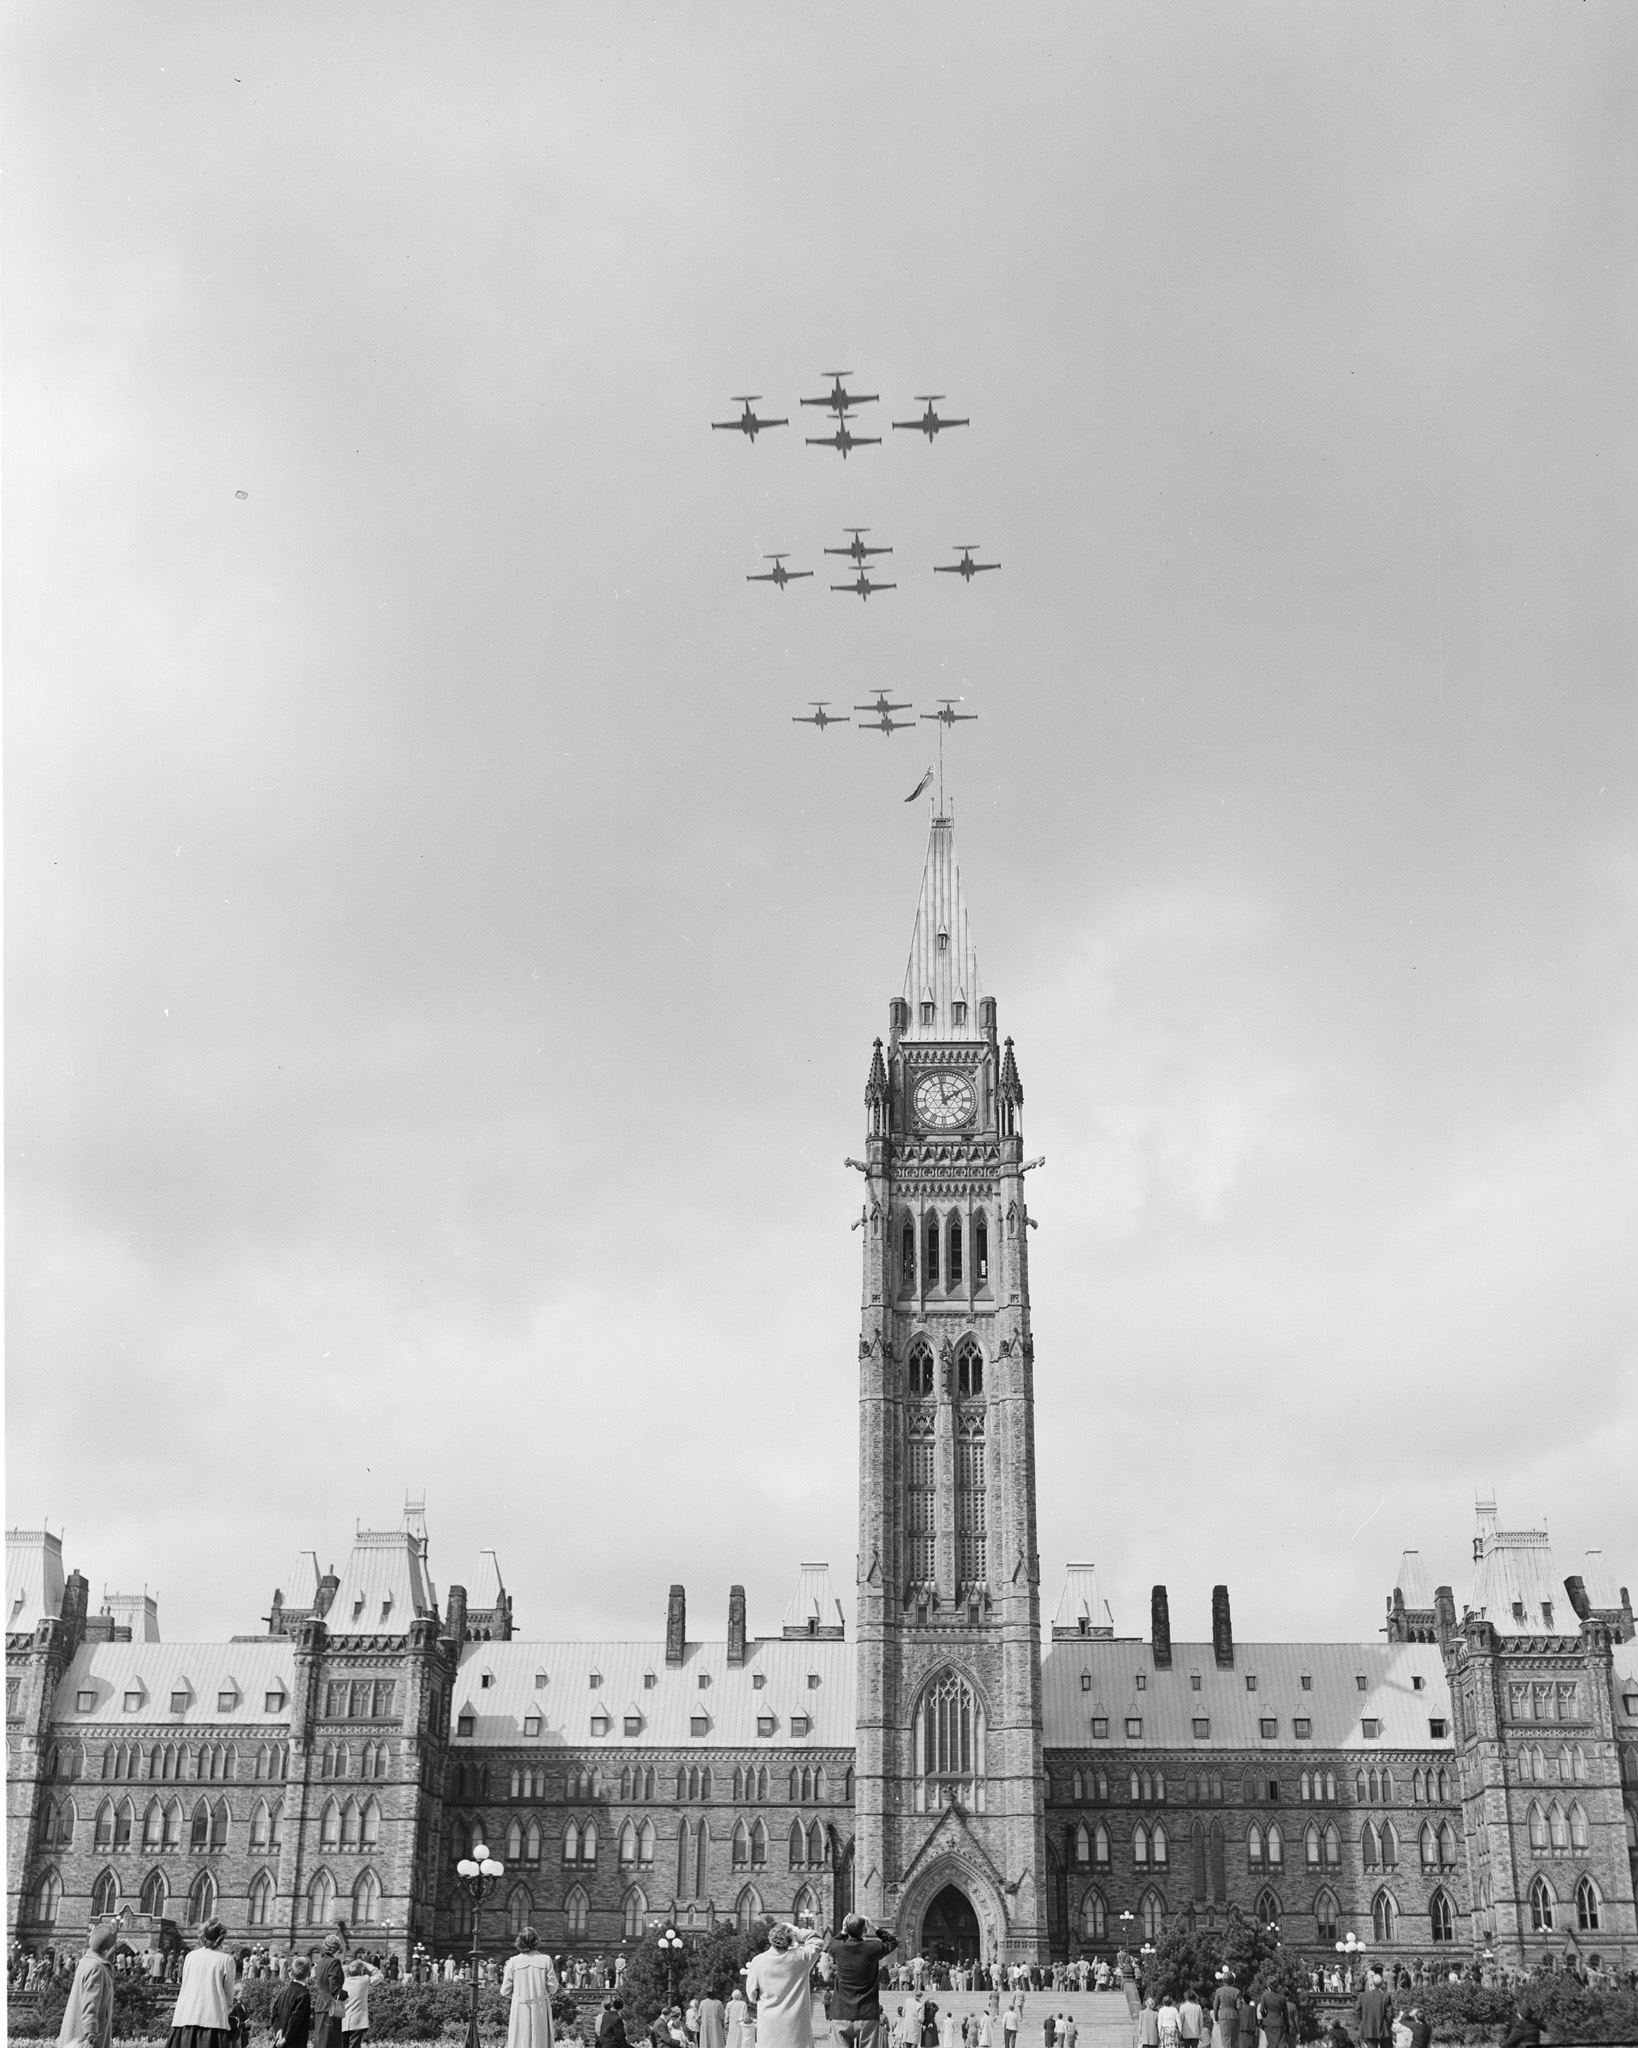 Twelve CF-100 Canuck aircraft fly over the Peace Tower during the Battle of Britain ceremony held in Ottawa on September 16, 1956. PHOTO: PL-105191, DND Archives